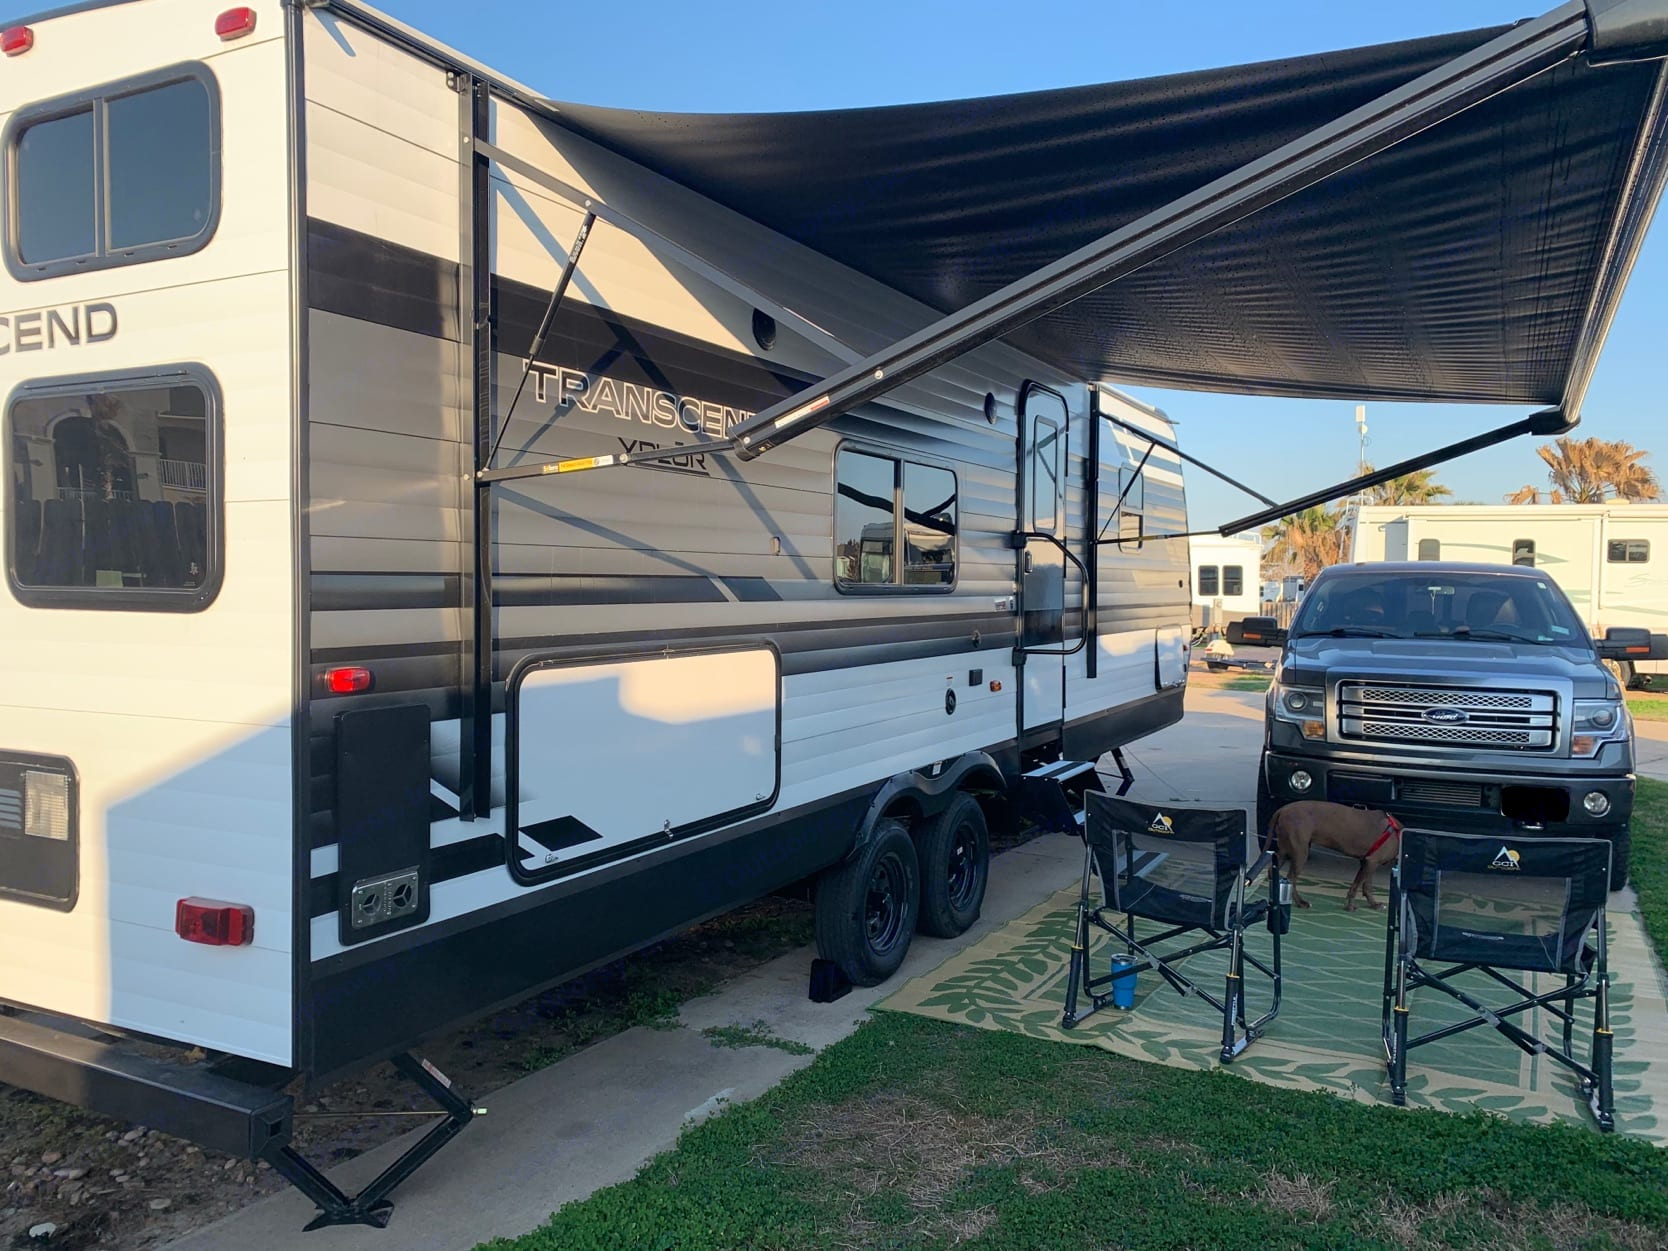 Owner setting up at their campsite in Port A!. Grand Design Transcend Xplor 2021